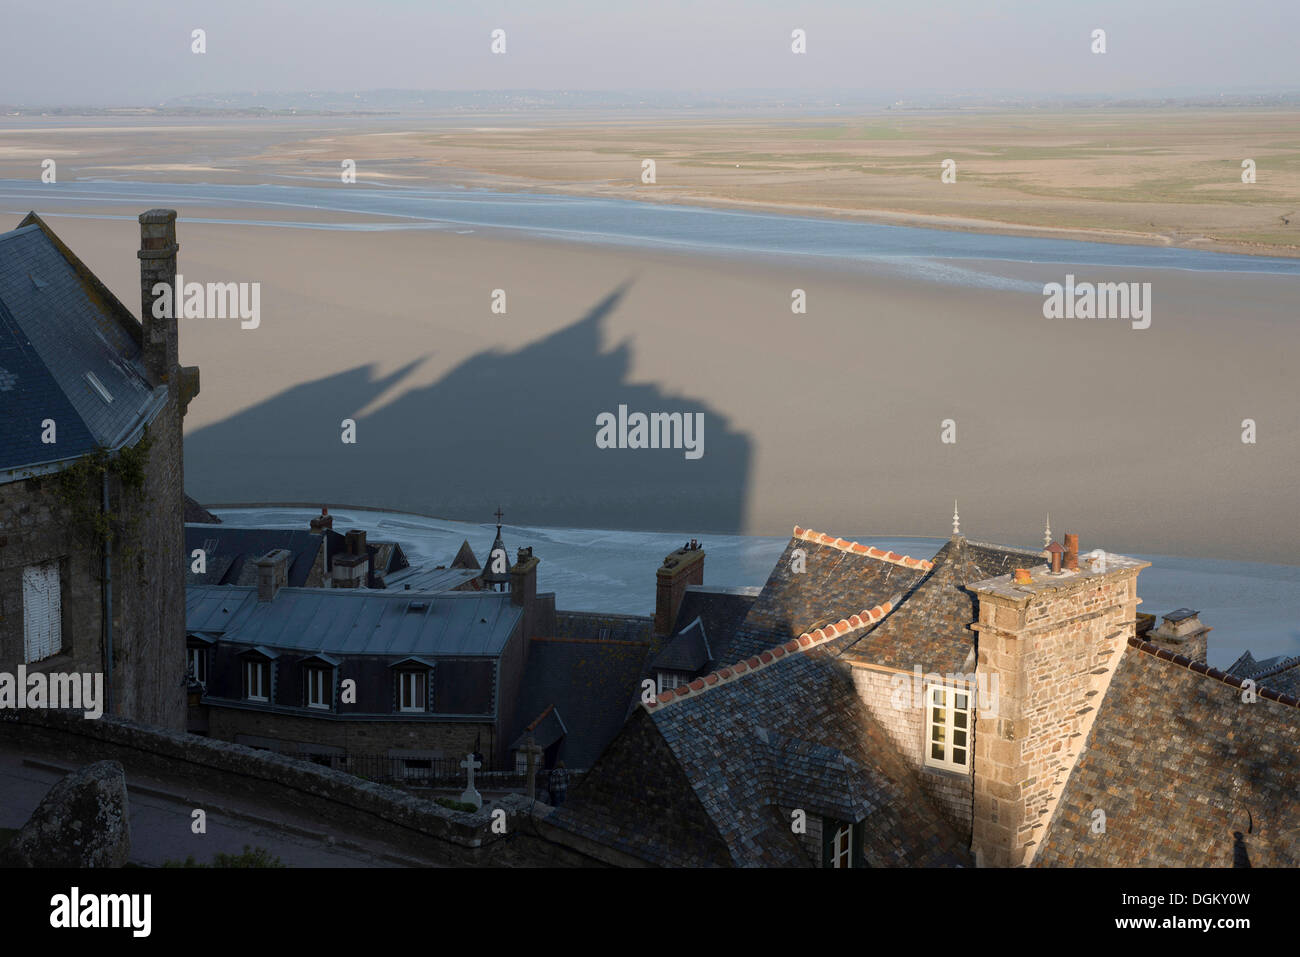 Roofs and shadow of Mont Saint-Michel, mud flats at low tide, Lower Normandy, France, Europe - Stock Image